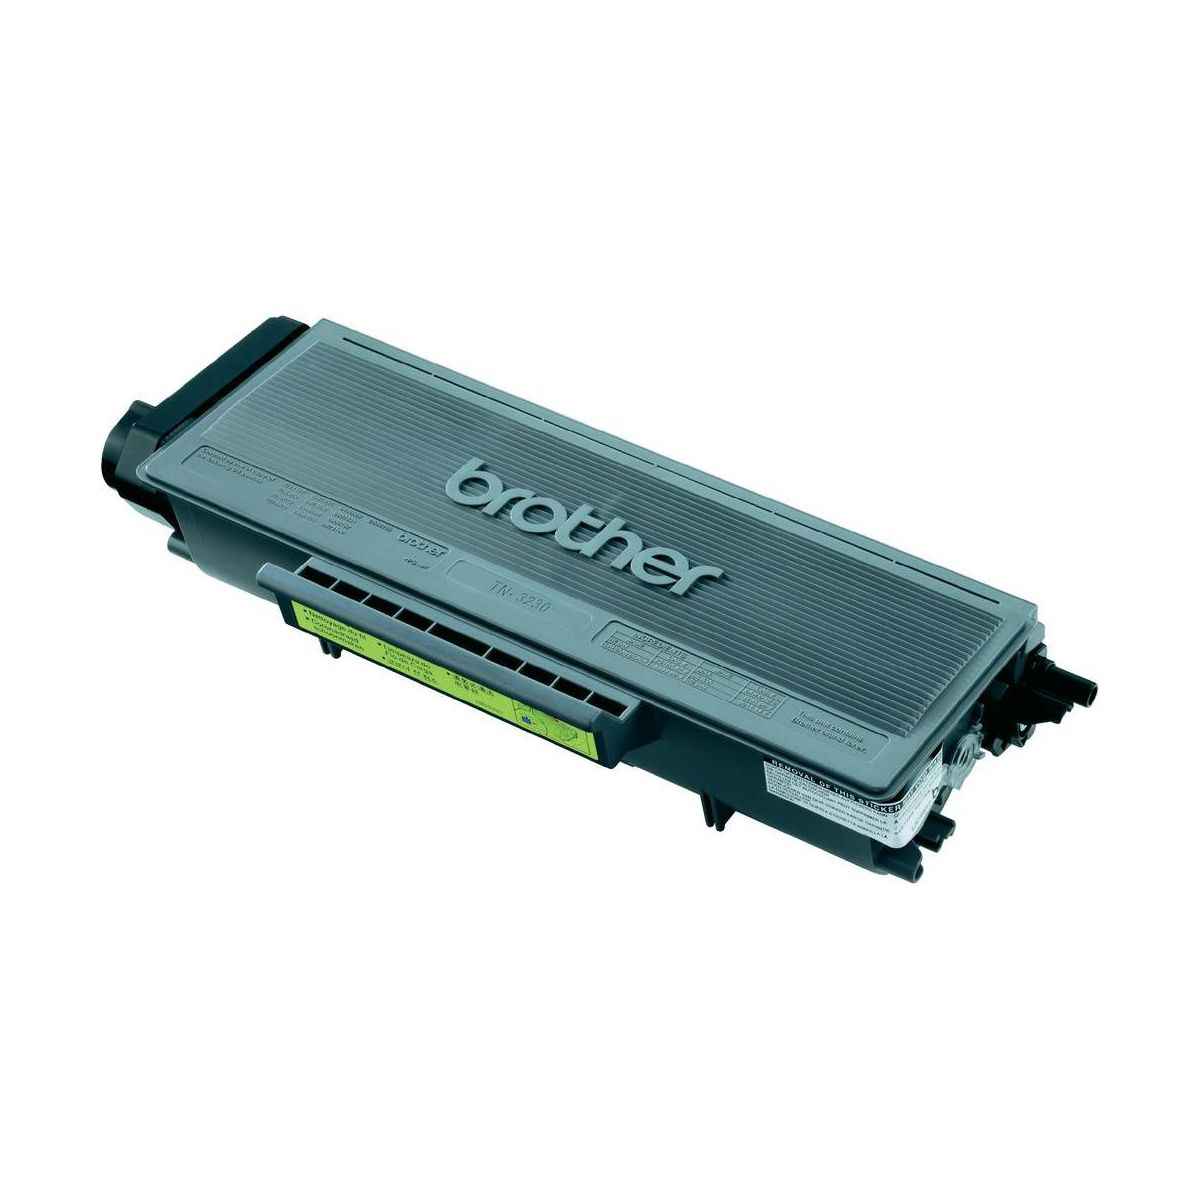 Toner brother tn-3230 - 2% de remise imm�diate avec le code : deal2